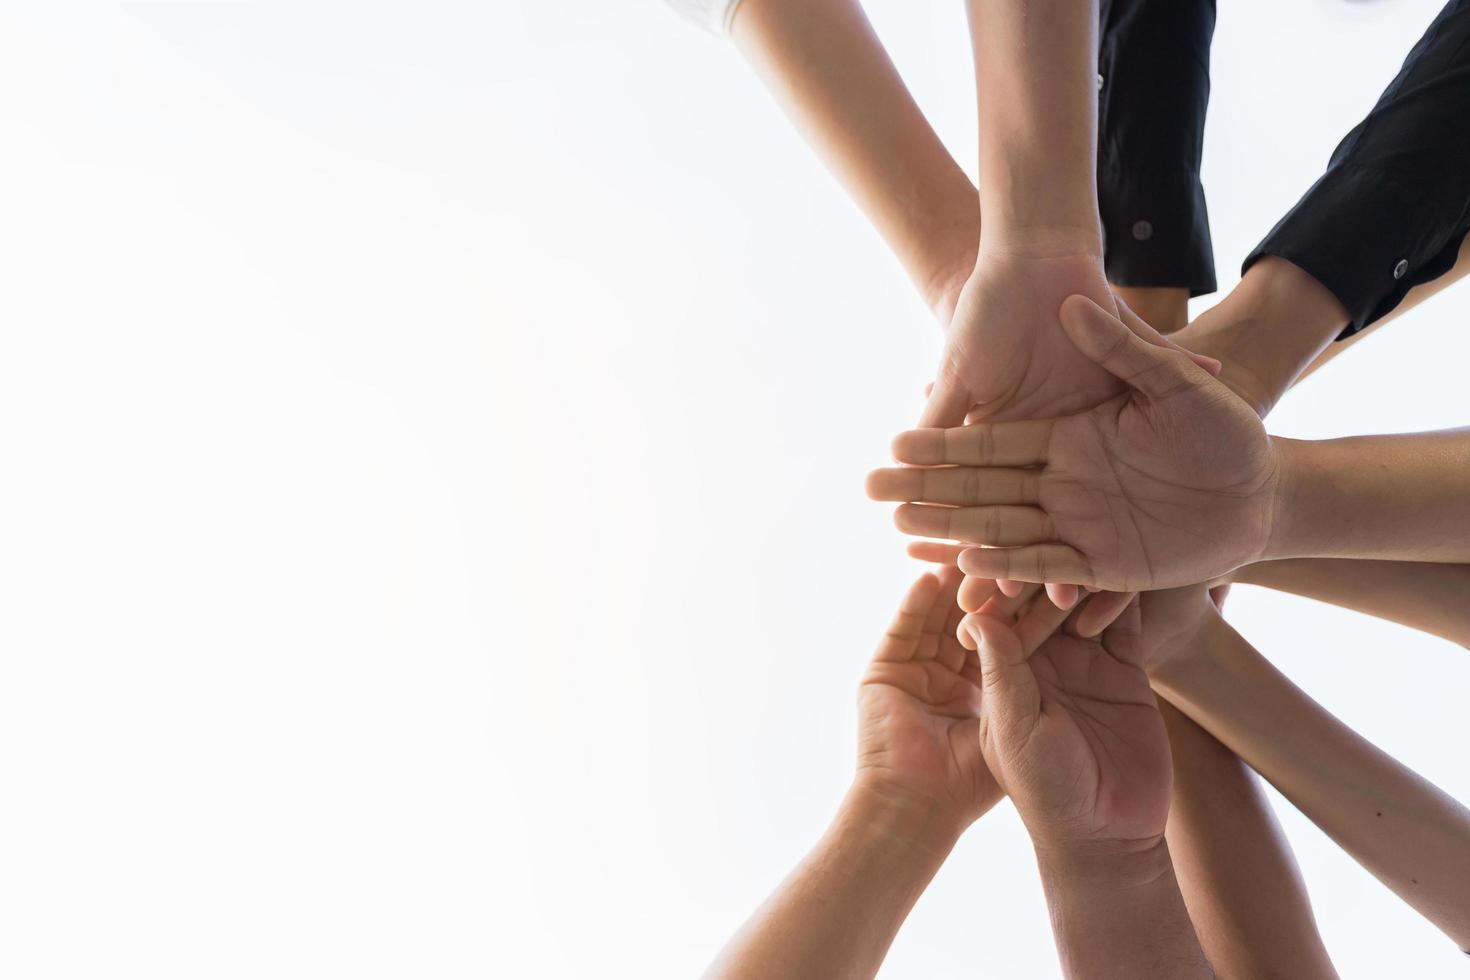 Human hands in a team huddle photo